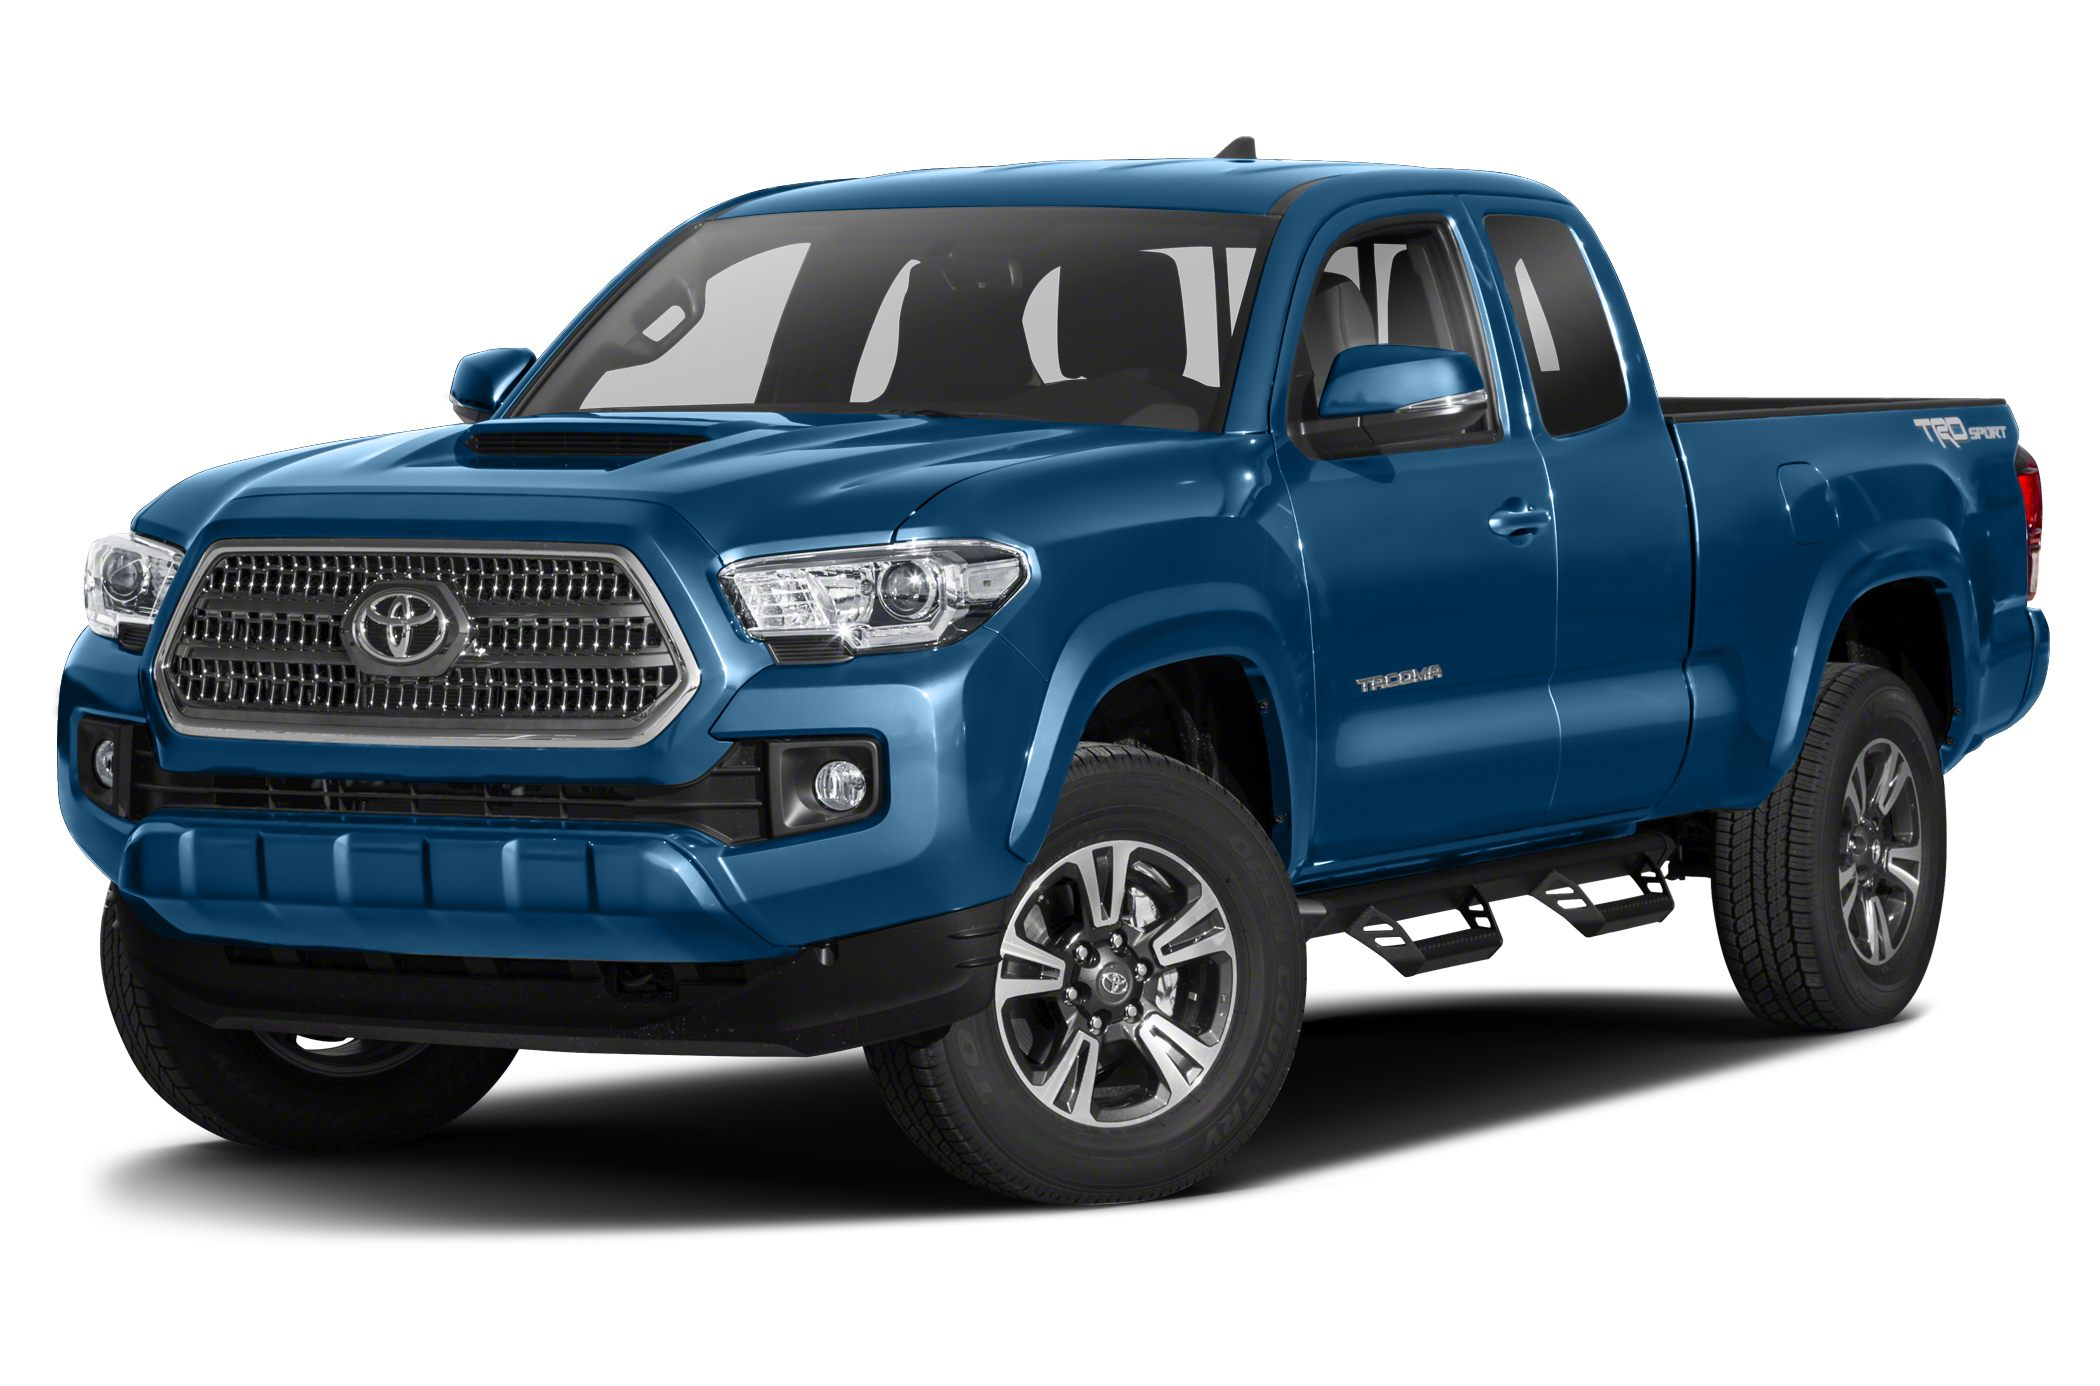 2018 Toyota Tacoma TRD Sport V6 4x2 Access Cab 127.4 in. WB